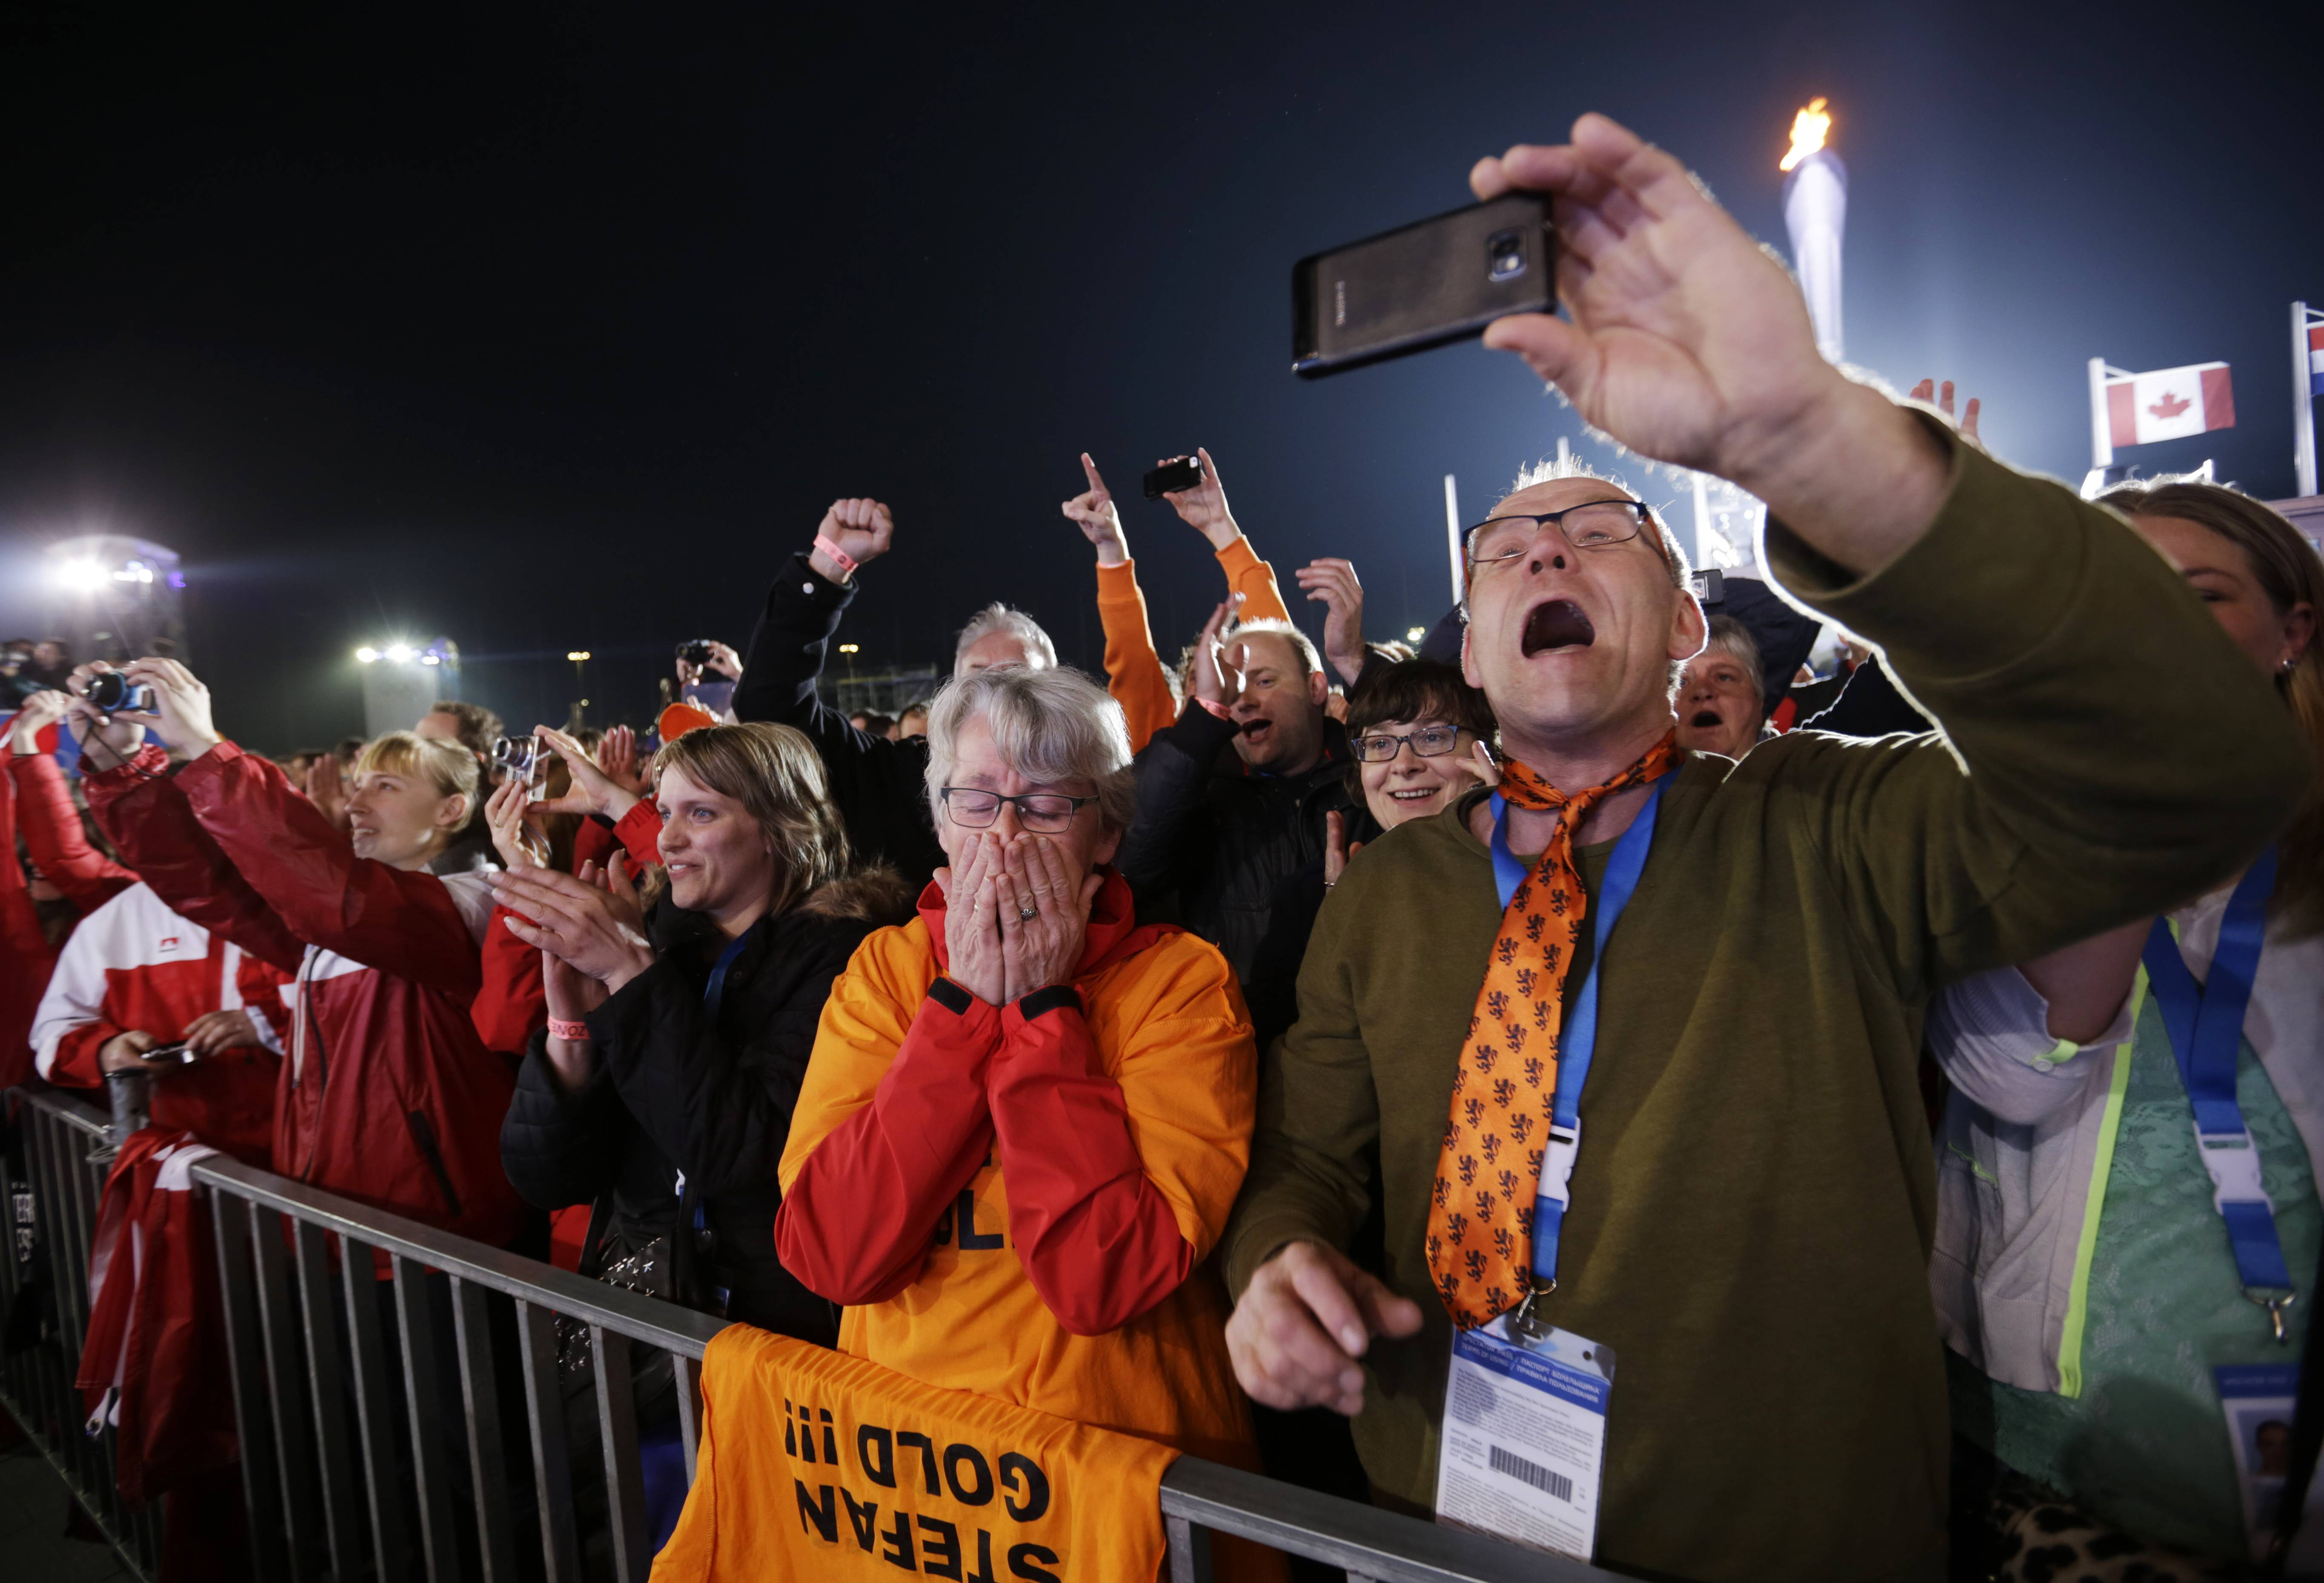 Aart Groothuis and his wife Hendrika Tekelenburg watch their son Stefan Groothuis, of the Netherlands, receive his gold medal in the men's 1000-meter speedskating .